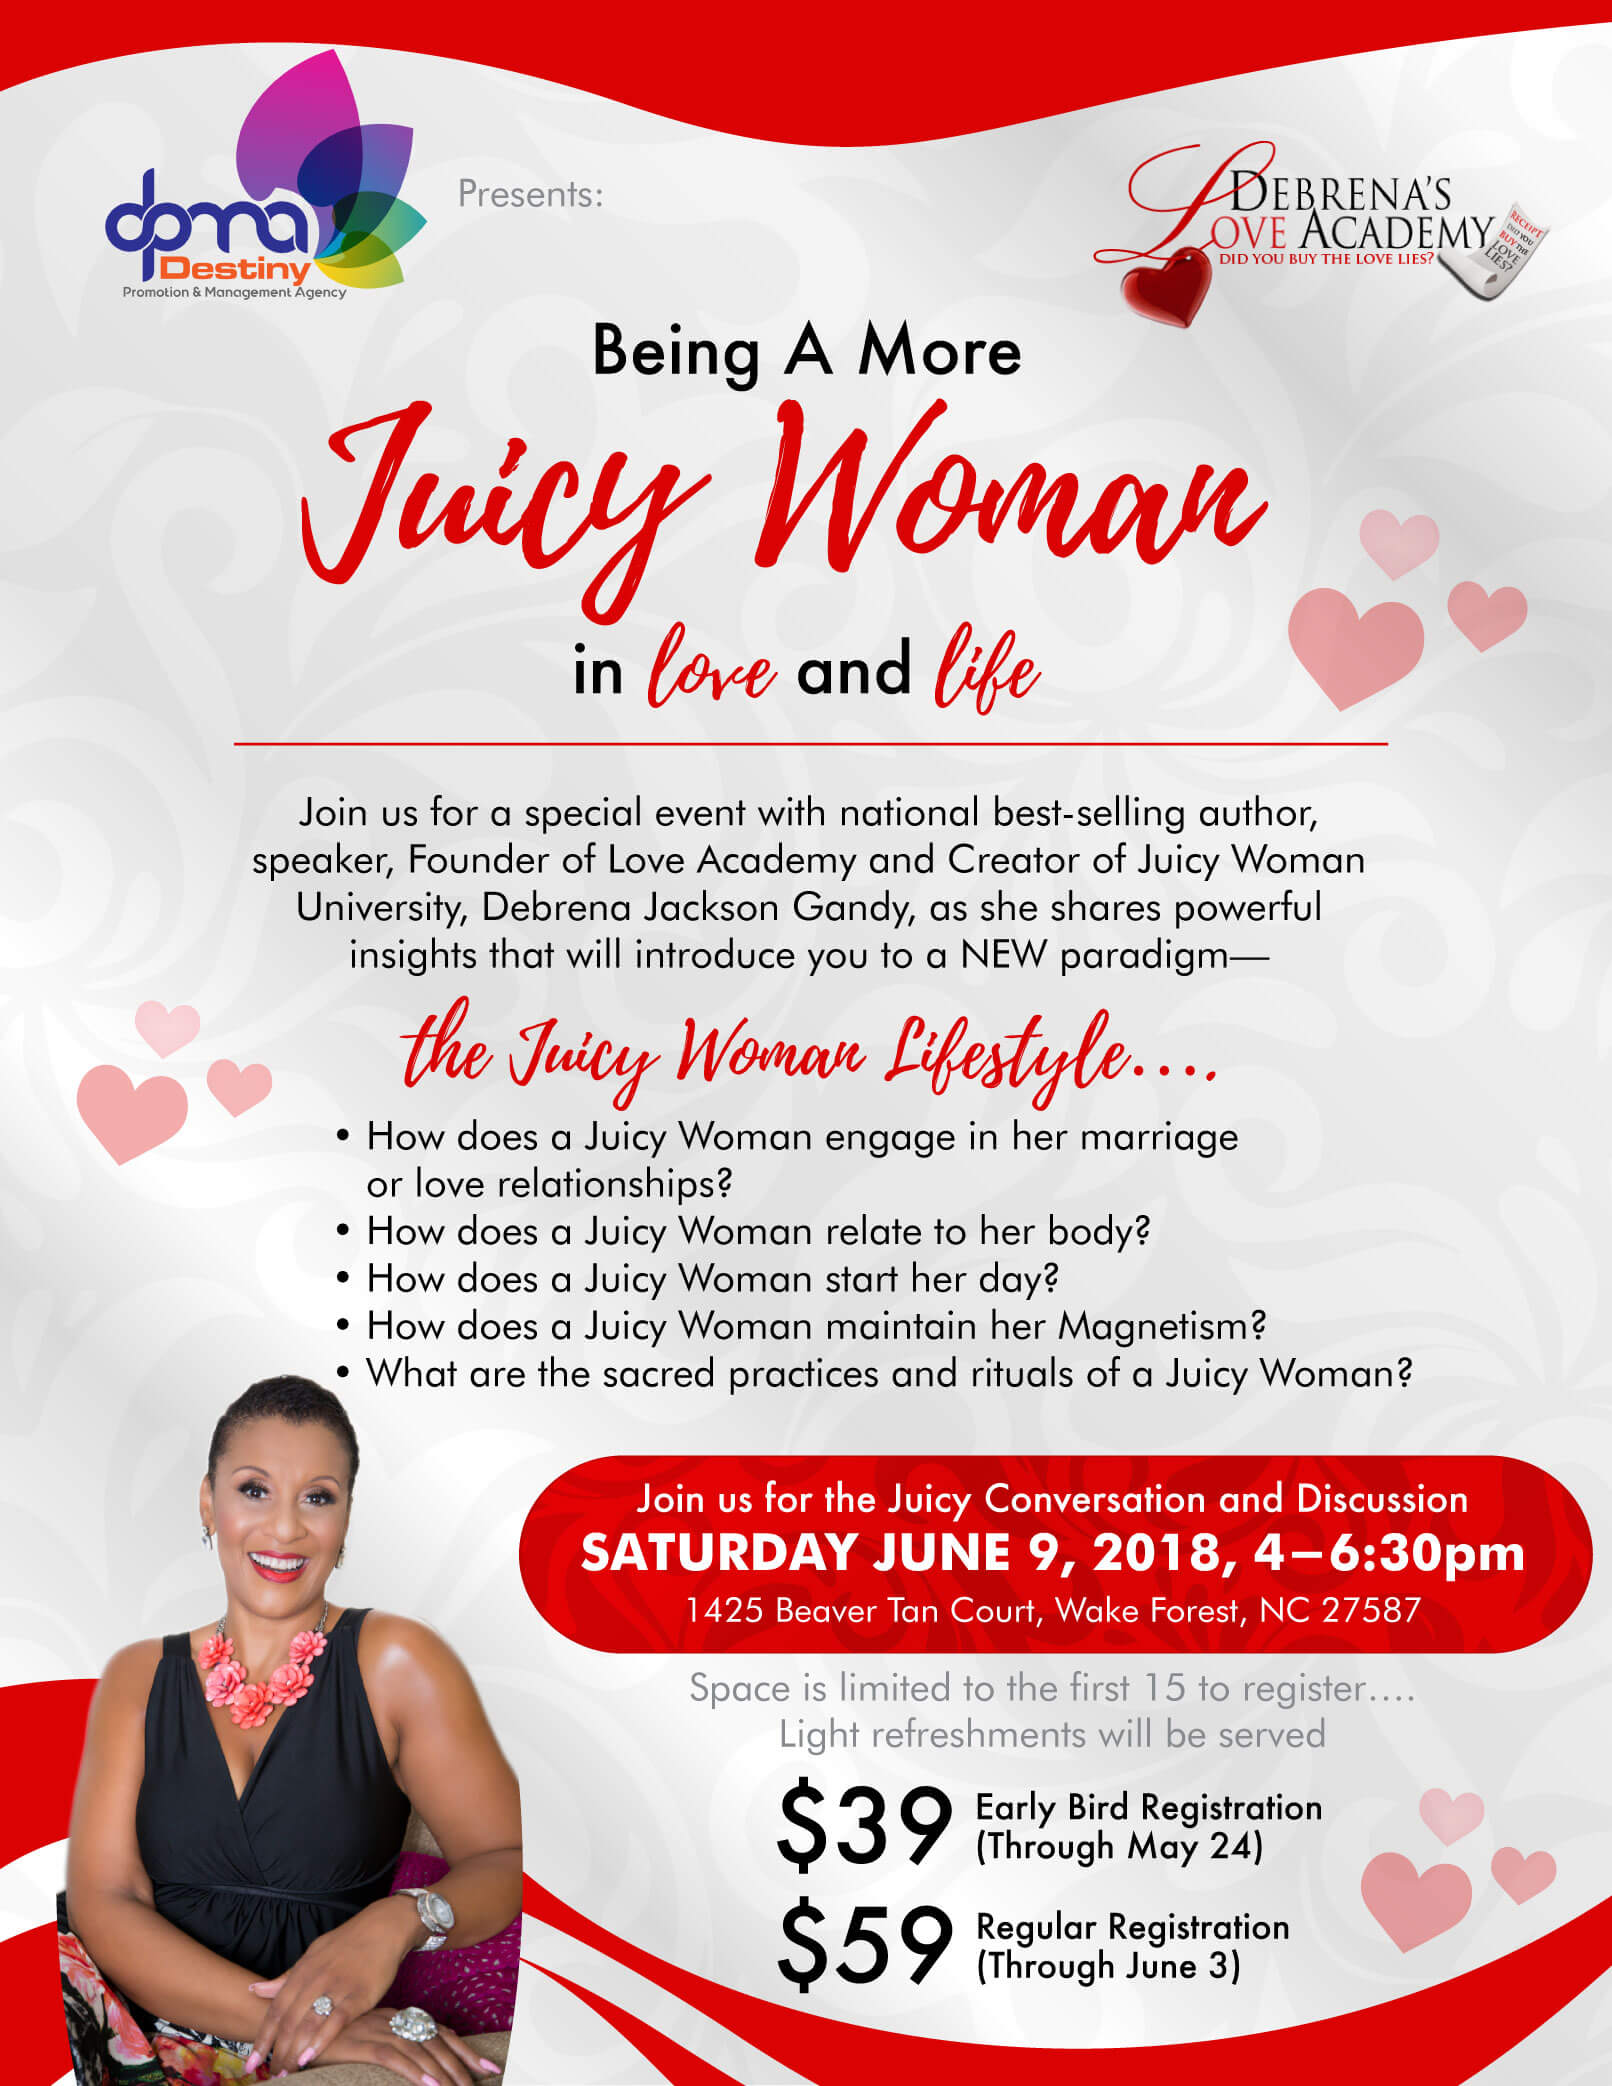 Being a more Juicy Woman in love and life